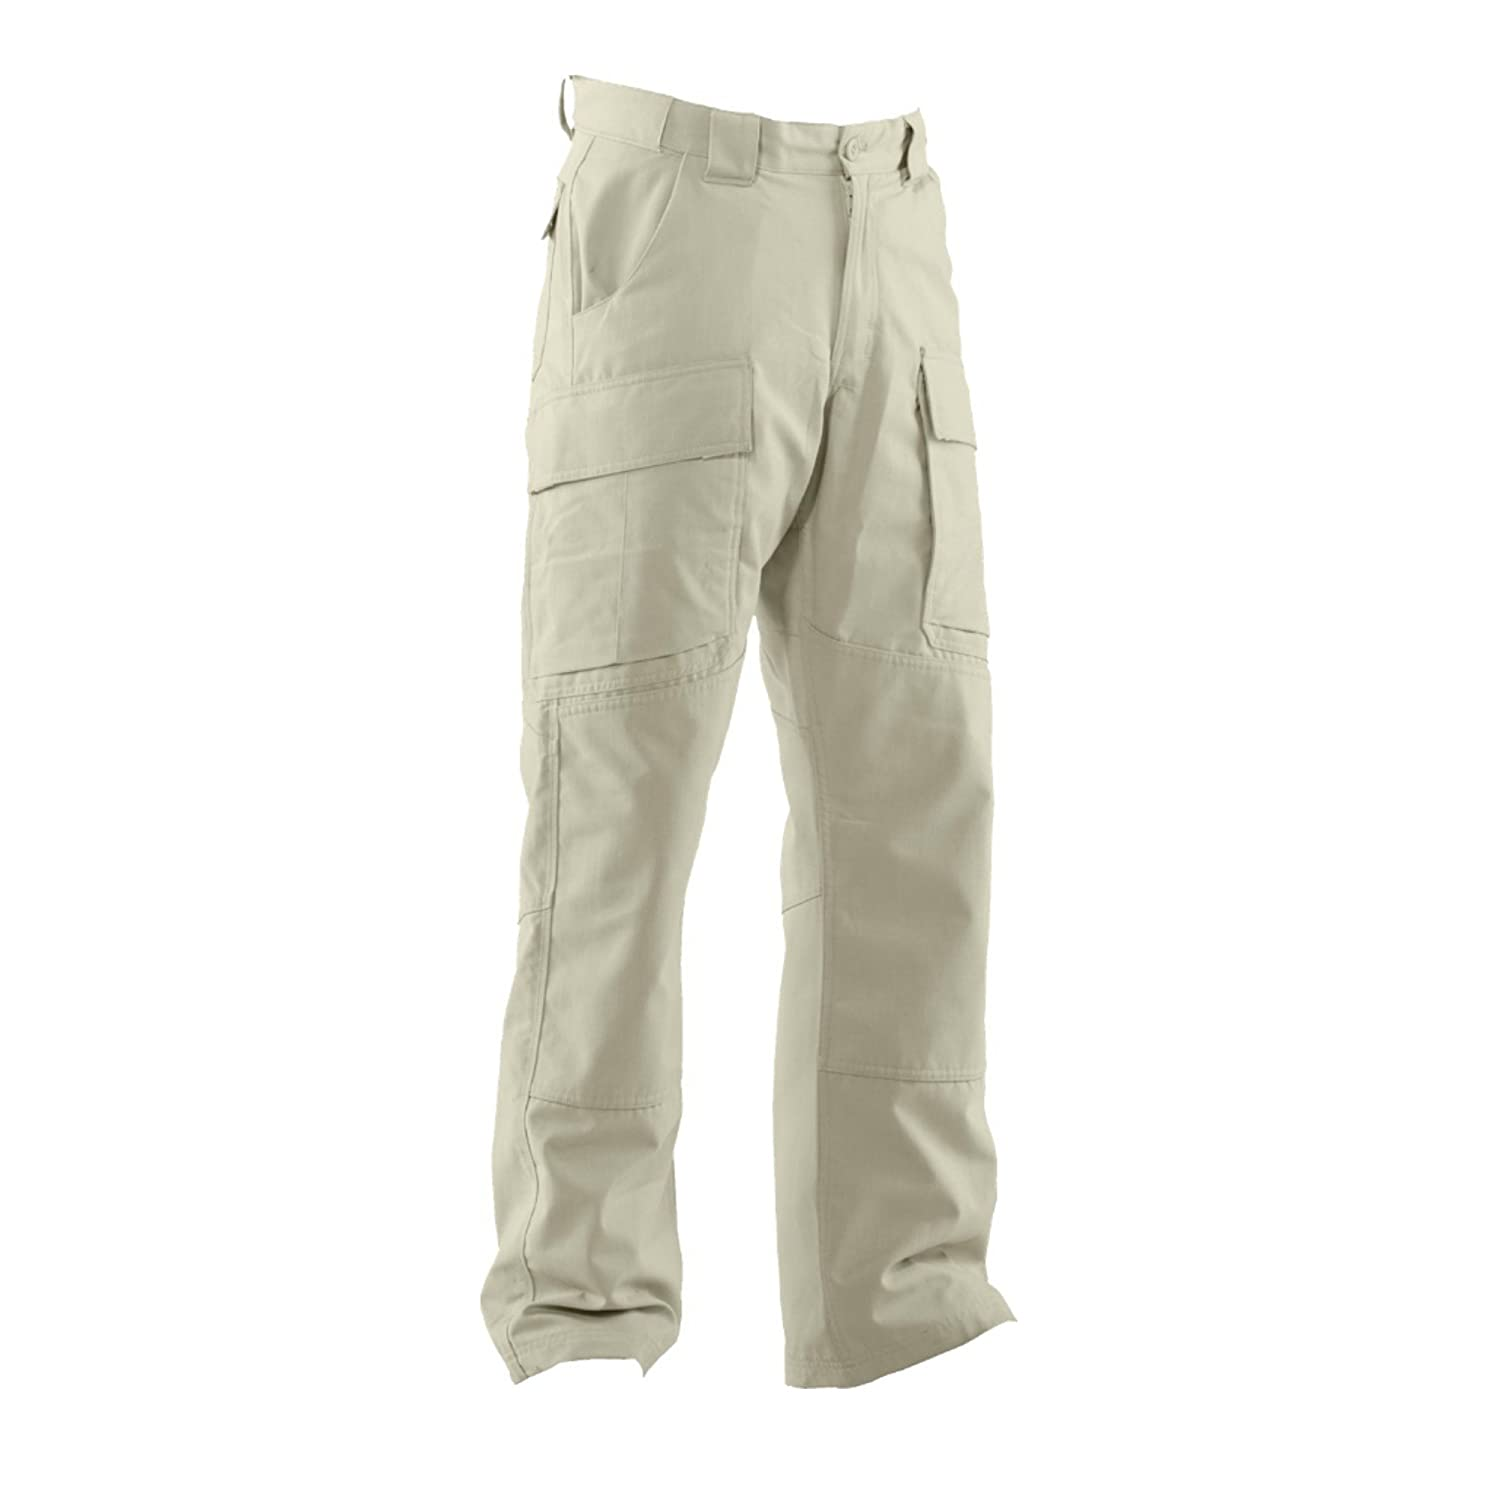 Under Armour Hose Tactical Cargo Tac Duty Pant Allseasongear, Beige, UA1230536B-4434